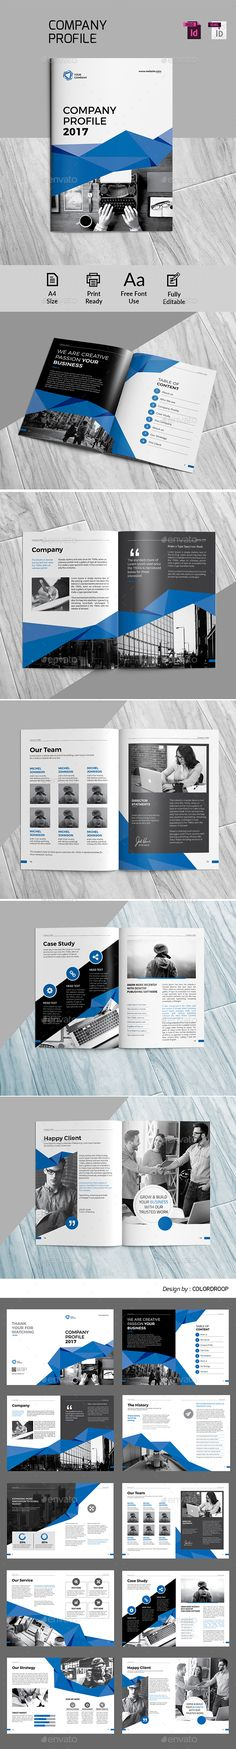 Company Profile — InDesign INDD #corporate #indesign • Download ➝ https://graphicriver.net/item/company-profile/19617015?ref=pxcr